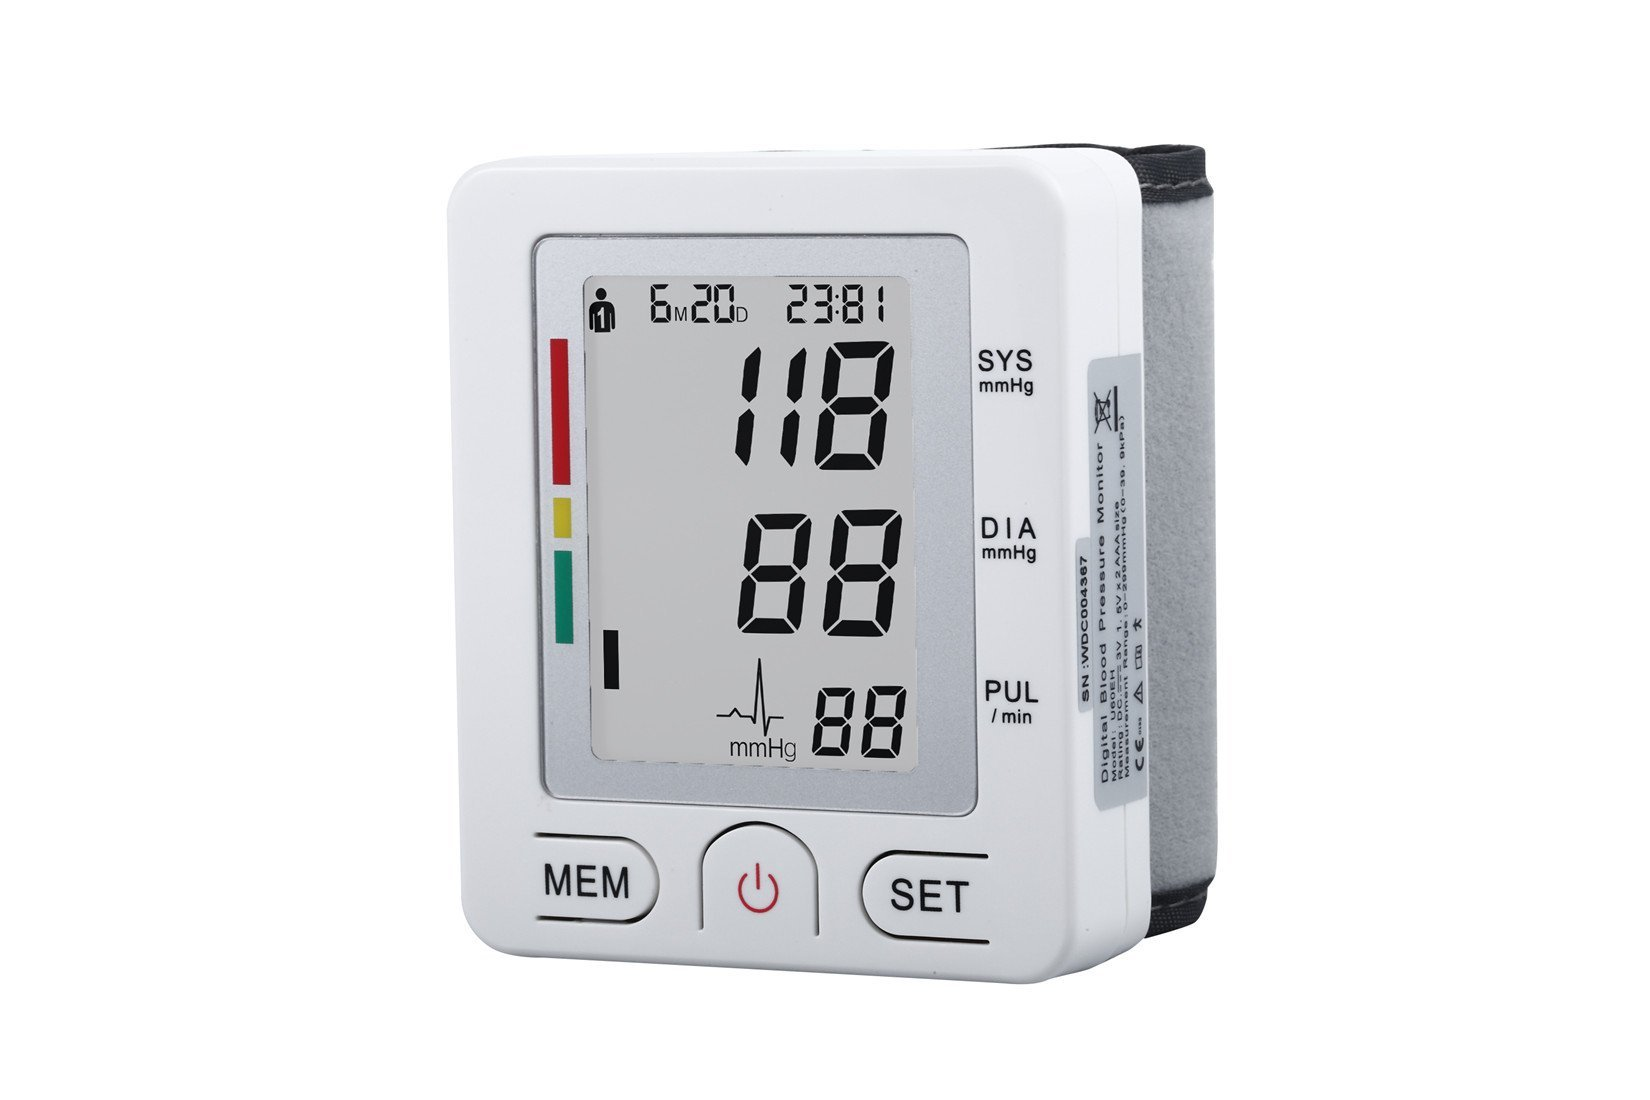 Fam-Health Portable Wrist Blood Pressure Monitor FDA Approved with Large Display, Two User Modes, Adjustable Wrist Cuff,IHB Indicator and 90 Memory Recall-White (U60BH)